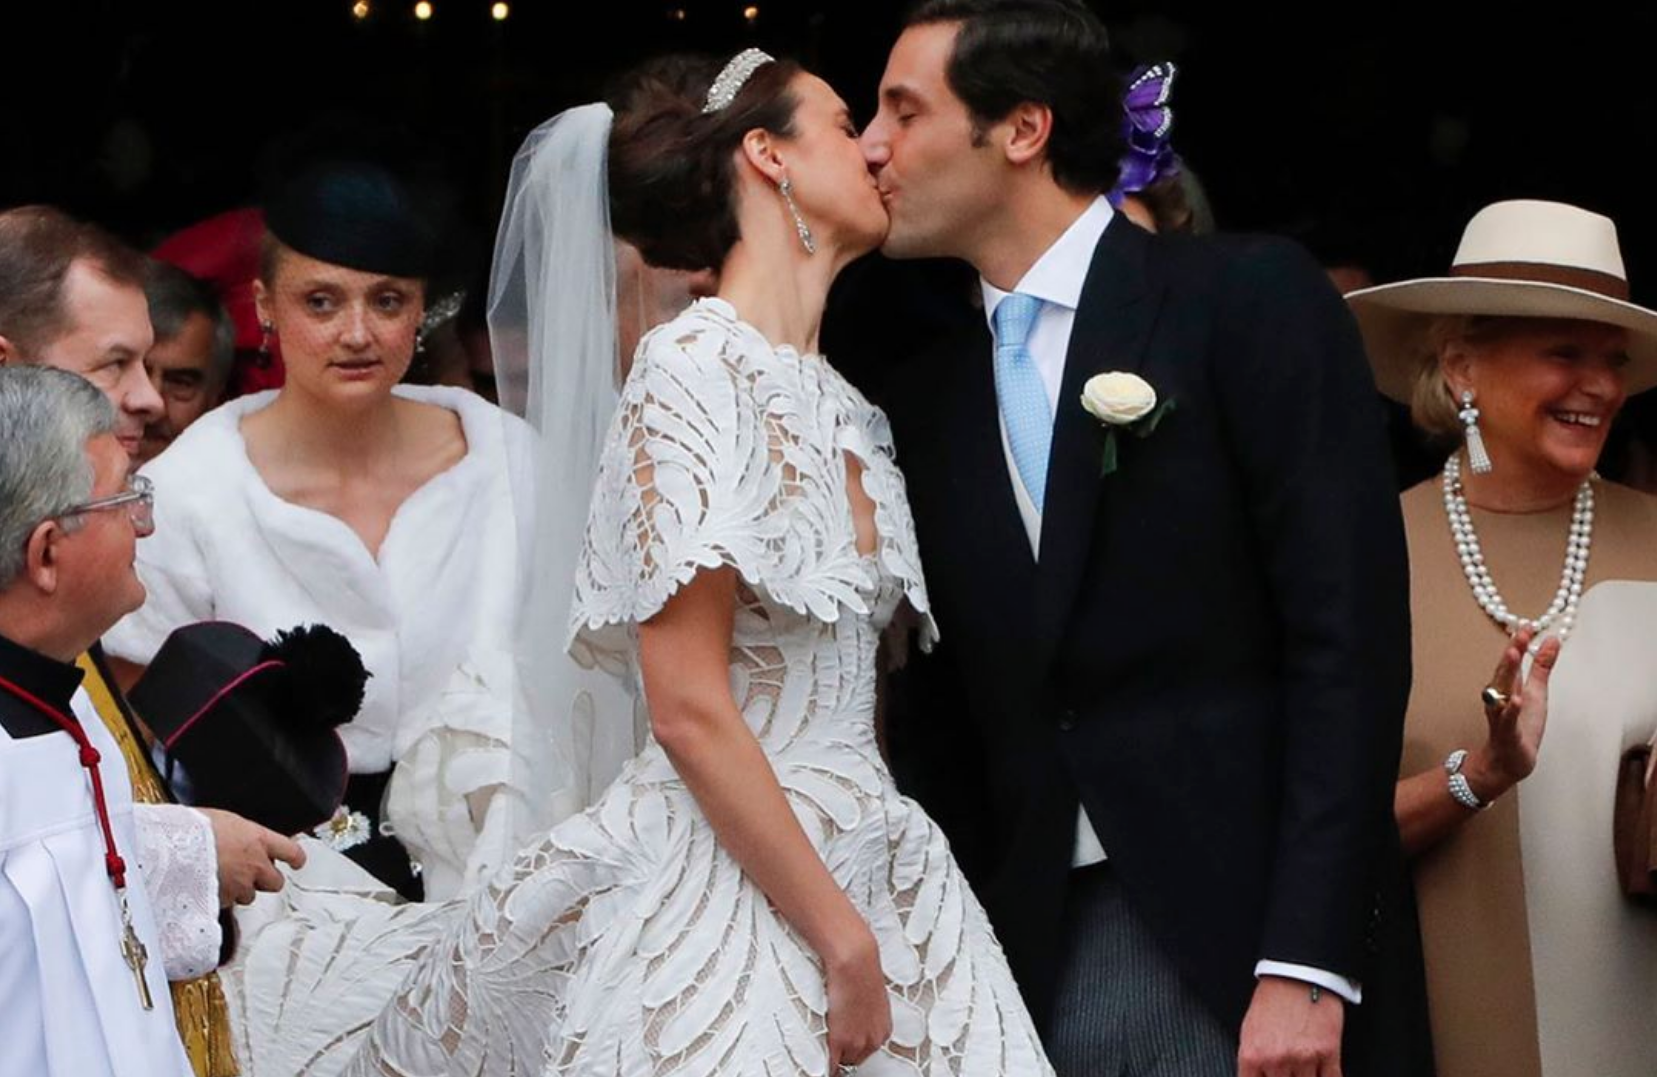 The Descendant Of Napoléon Bonaparte Held A Lavish Wedding In Paris—These Are The Royal Guests Who Attended